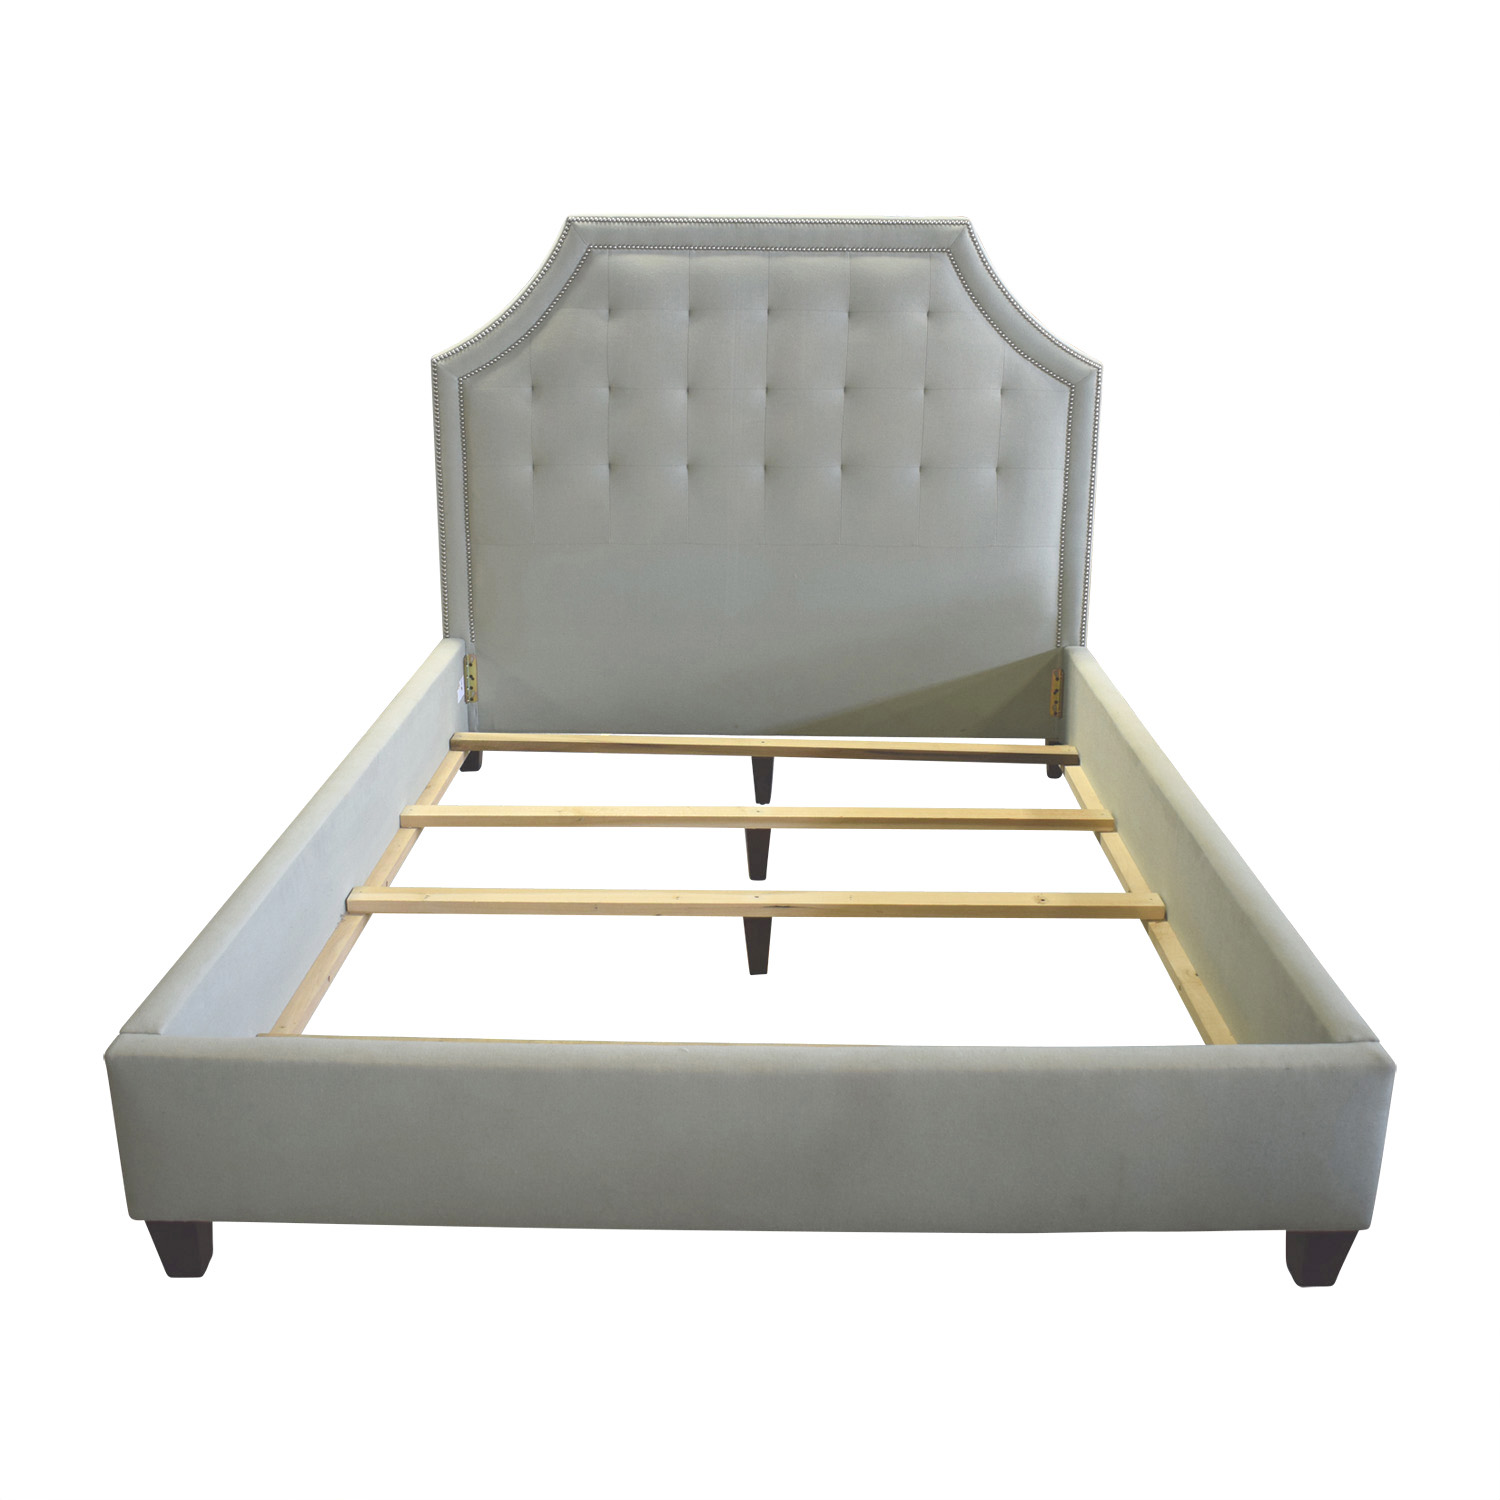 sale inside size opulent design queen bed cool costco ideas unique frame home for frames architecture